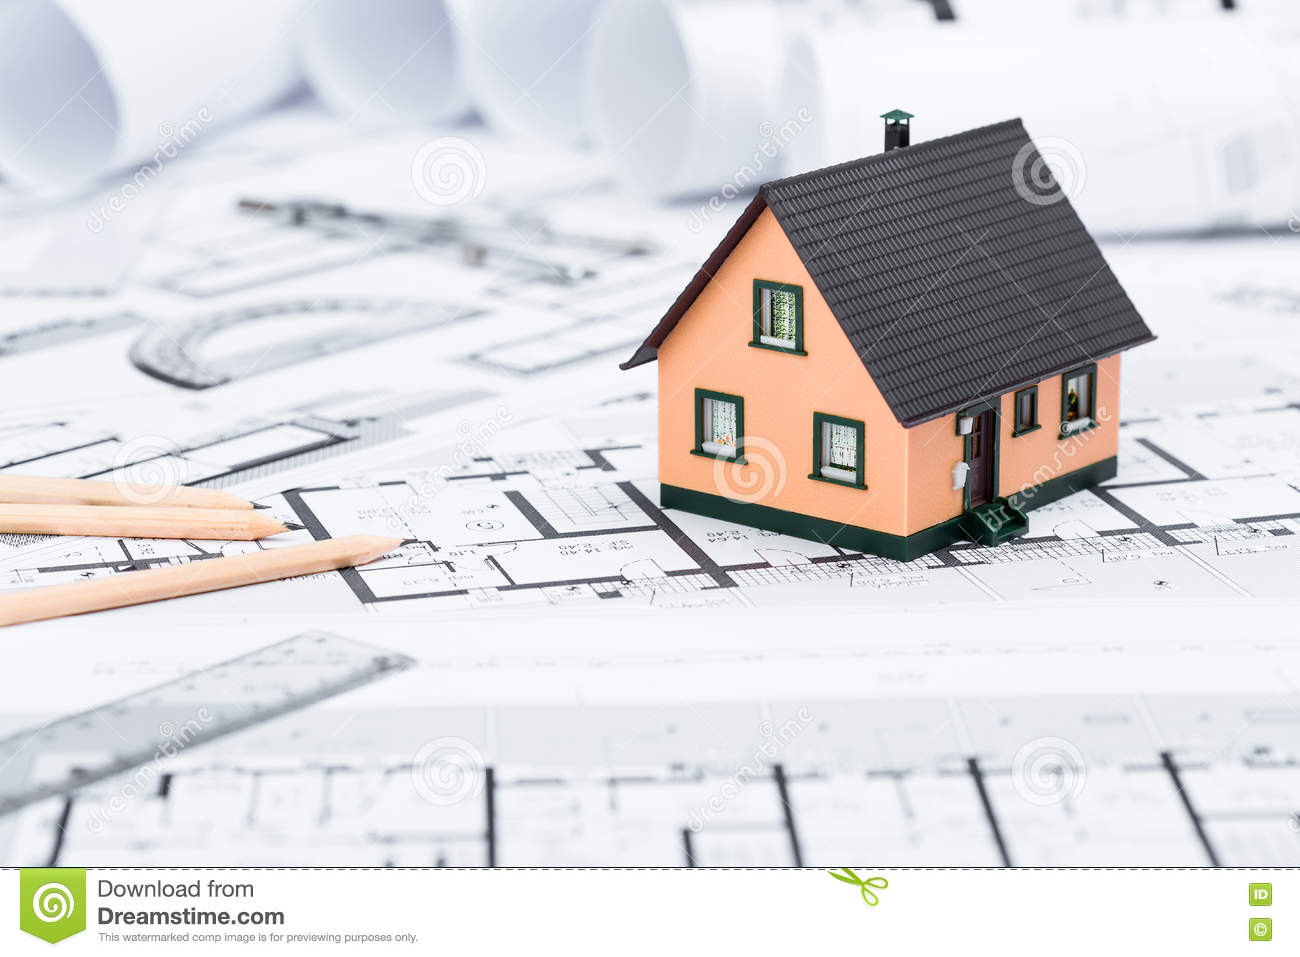 Construction plans with drawing tools and house miniature on blu stock image image of for Concept home architecture and engineering